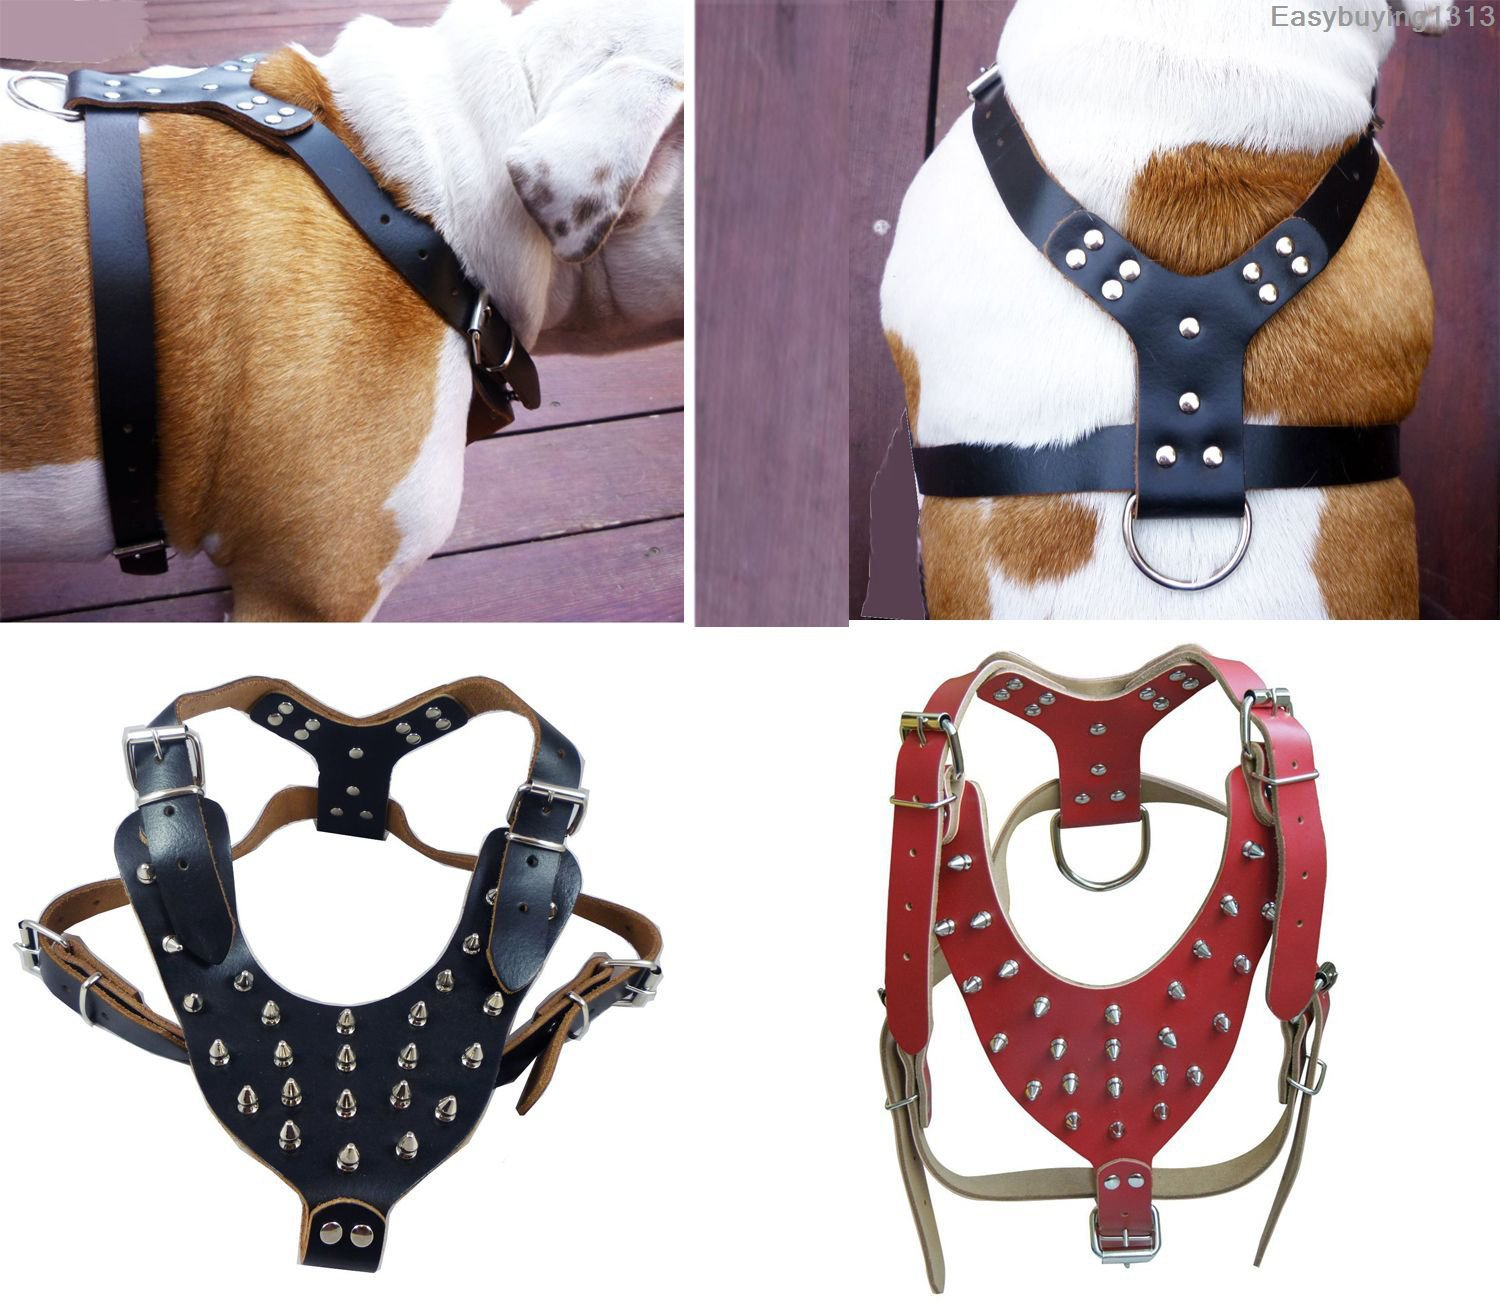 Black Red New Spiked Studded Leather Dog Harness for Pitbull Mastiff Boxer